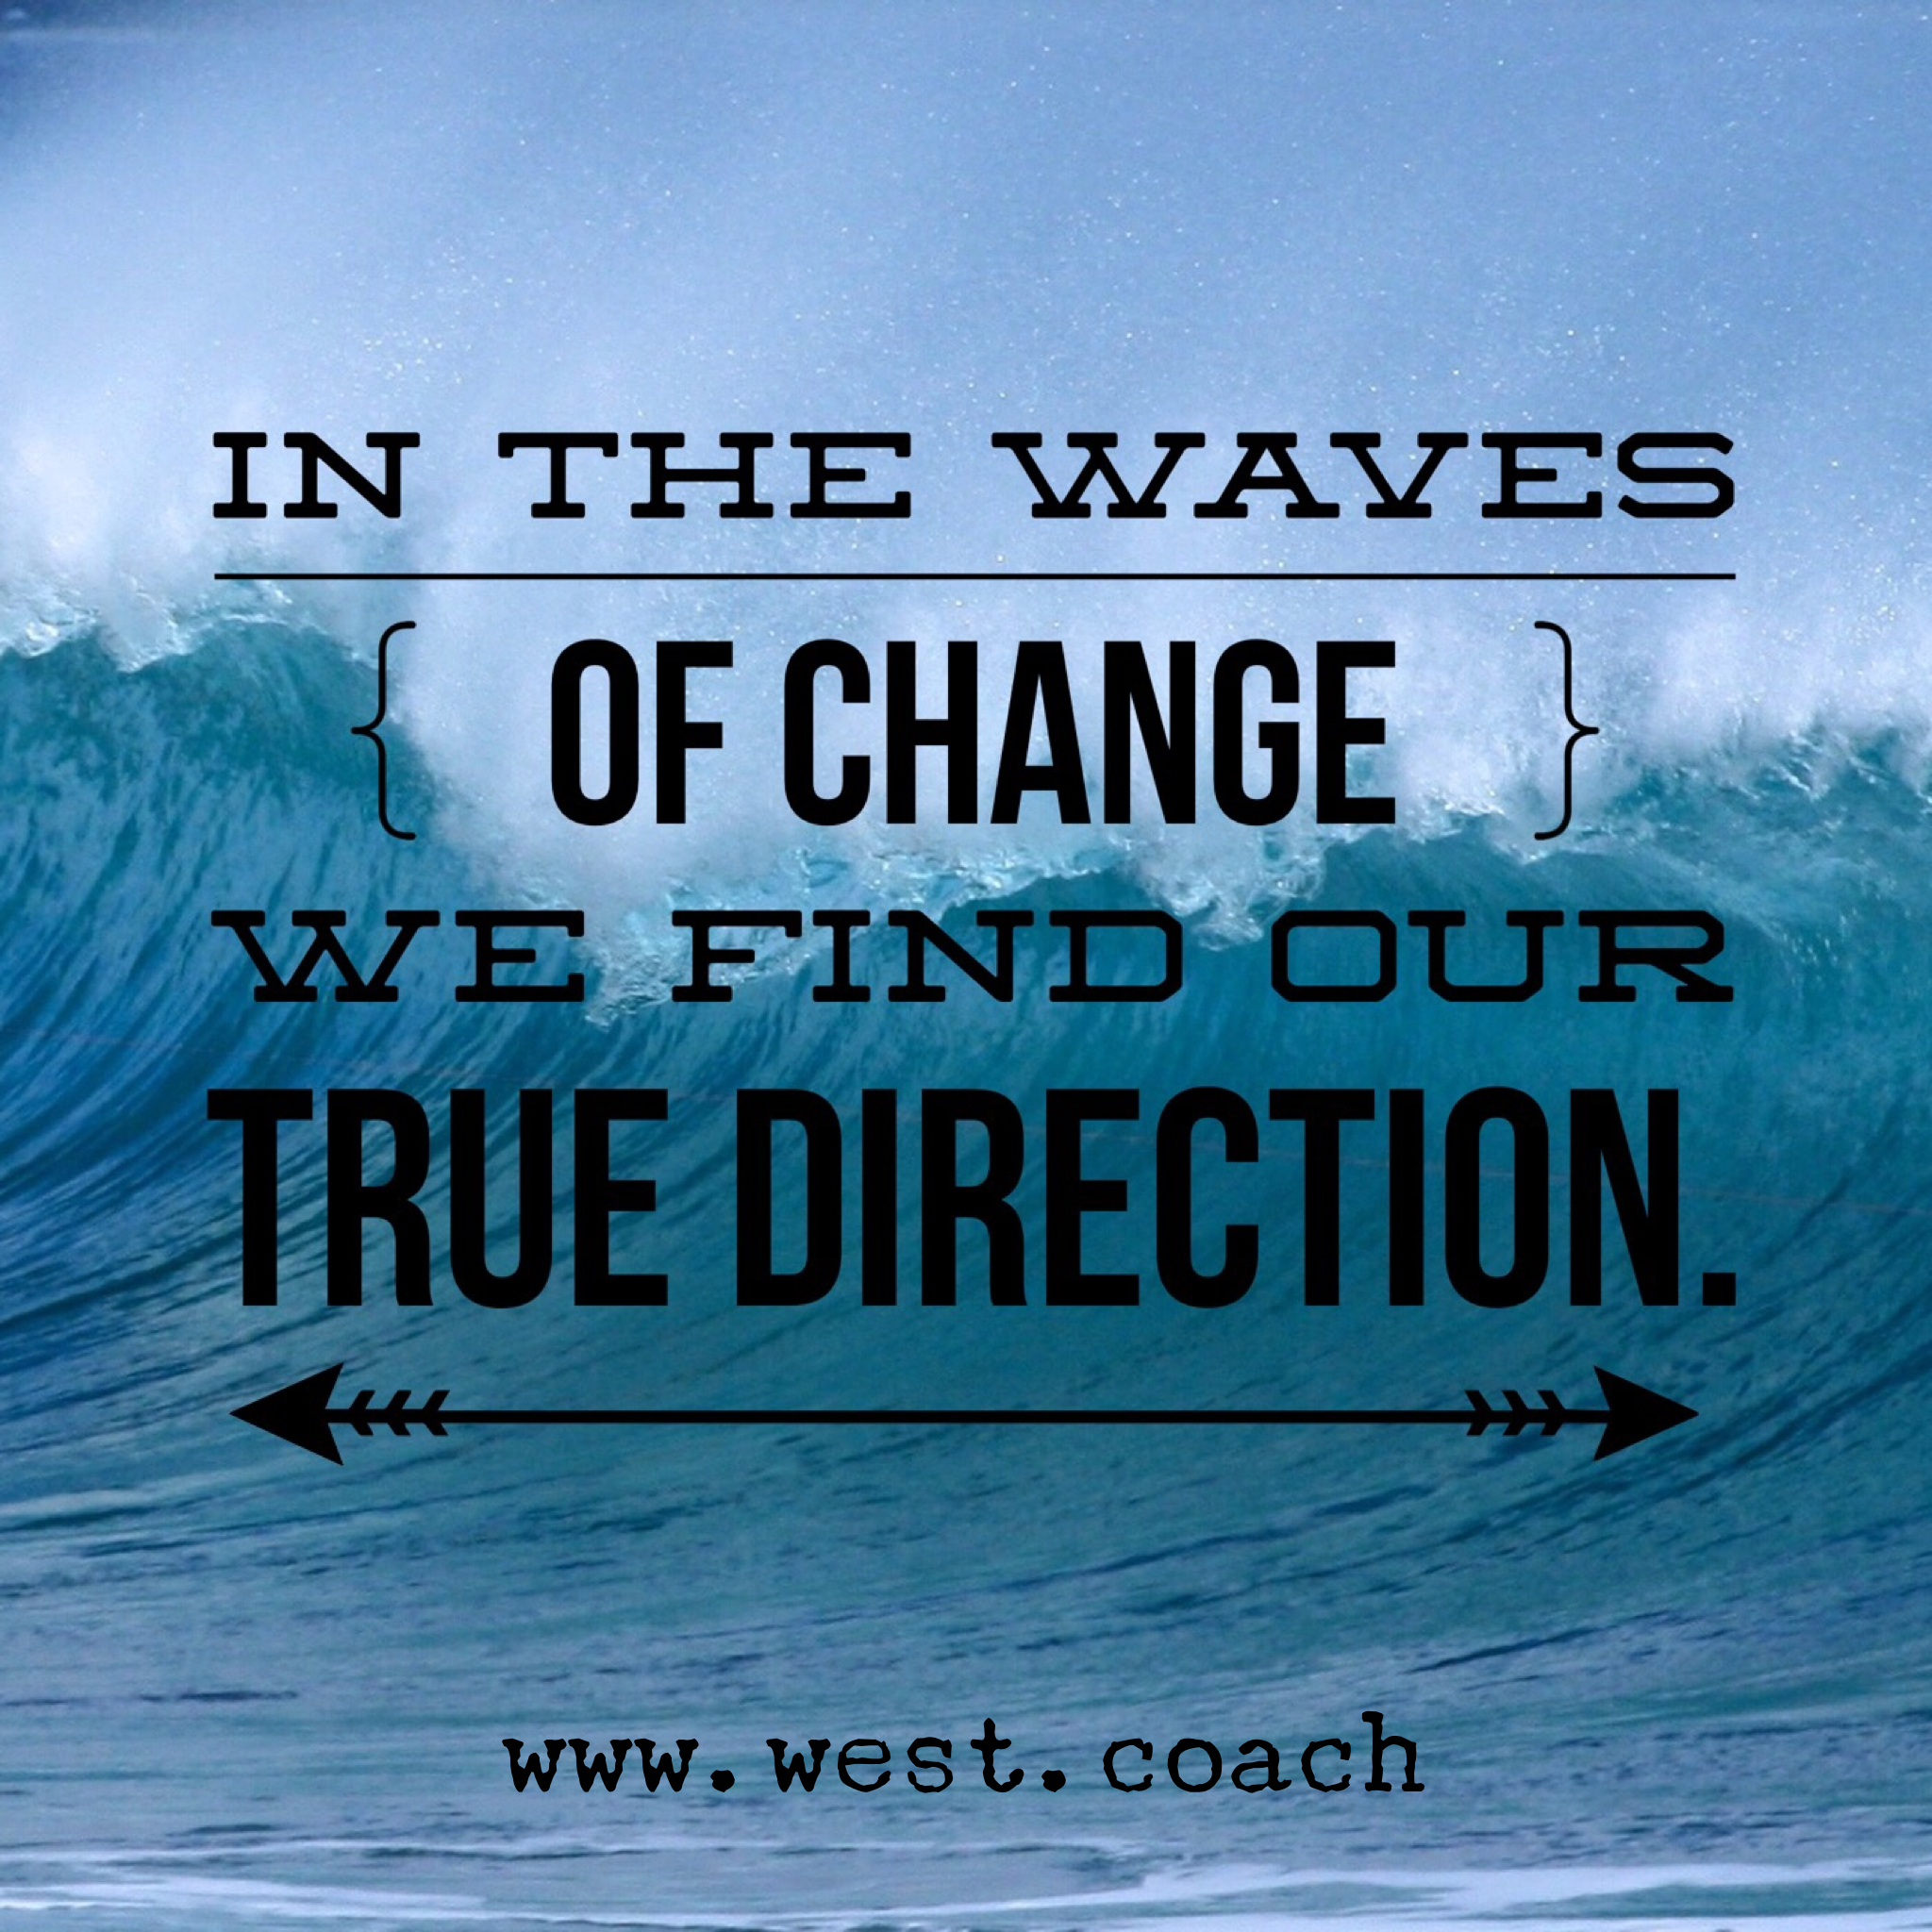 In the waves of change we find our true direction. Eileen